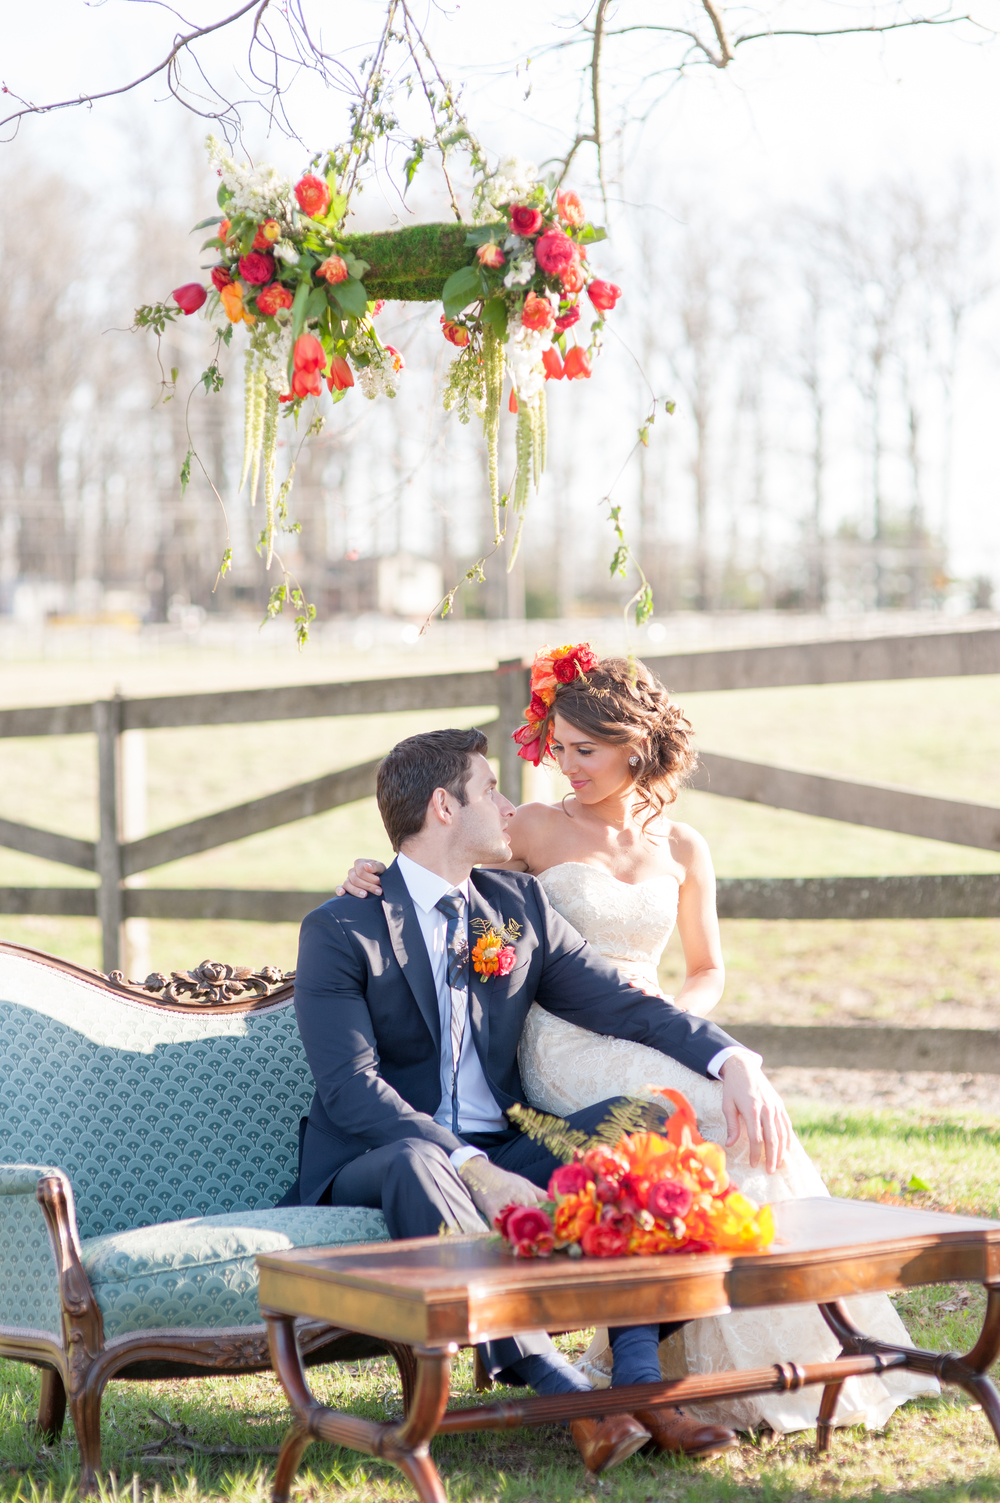 Vibrant Romantic Dutch Wedding at Woodlawn Manor-106.jpg